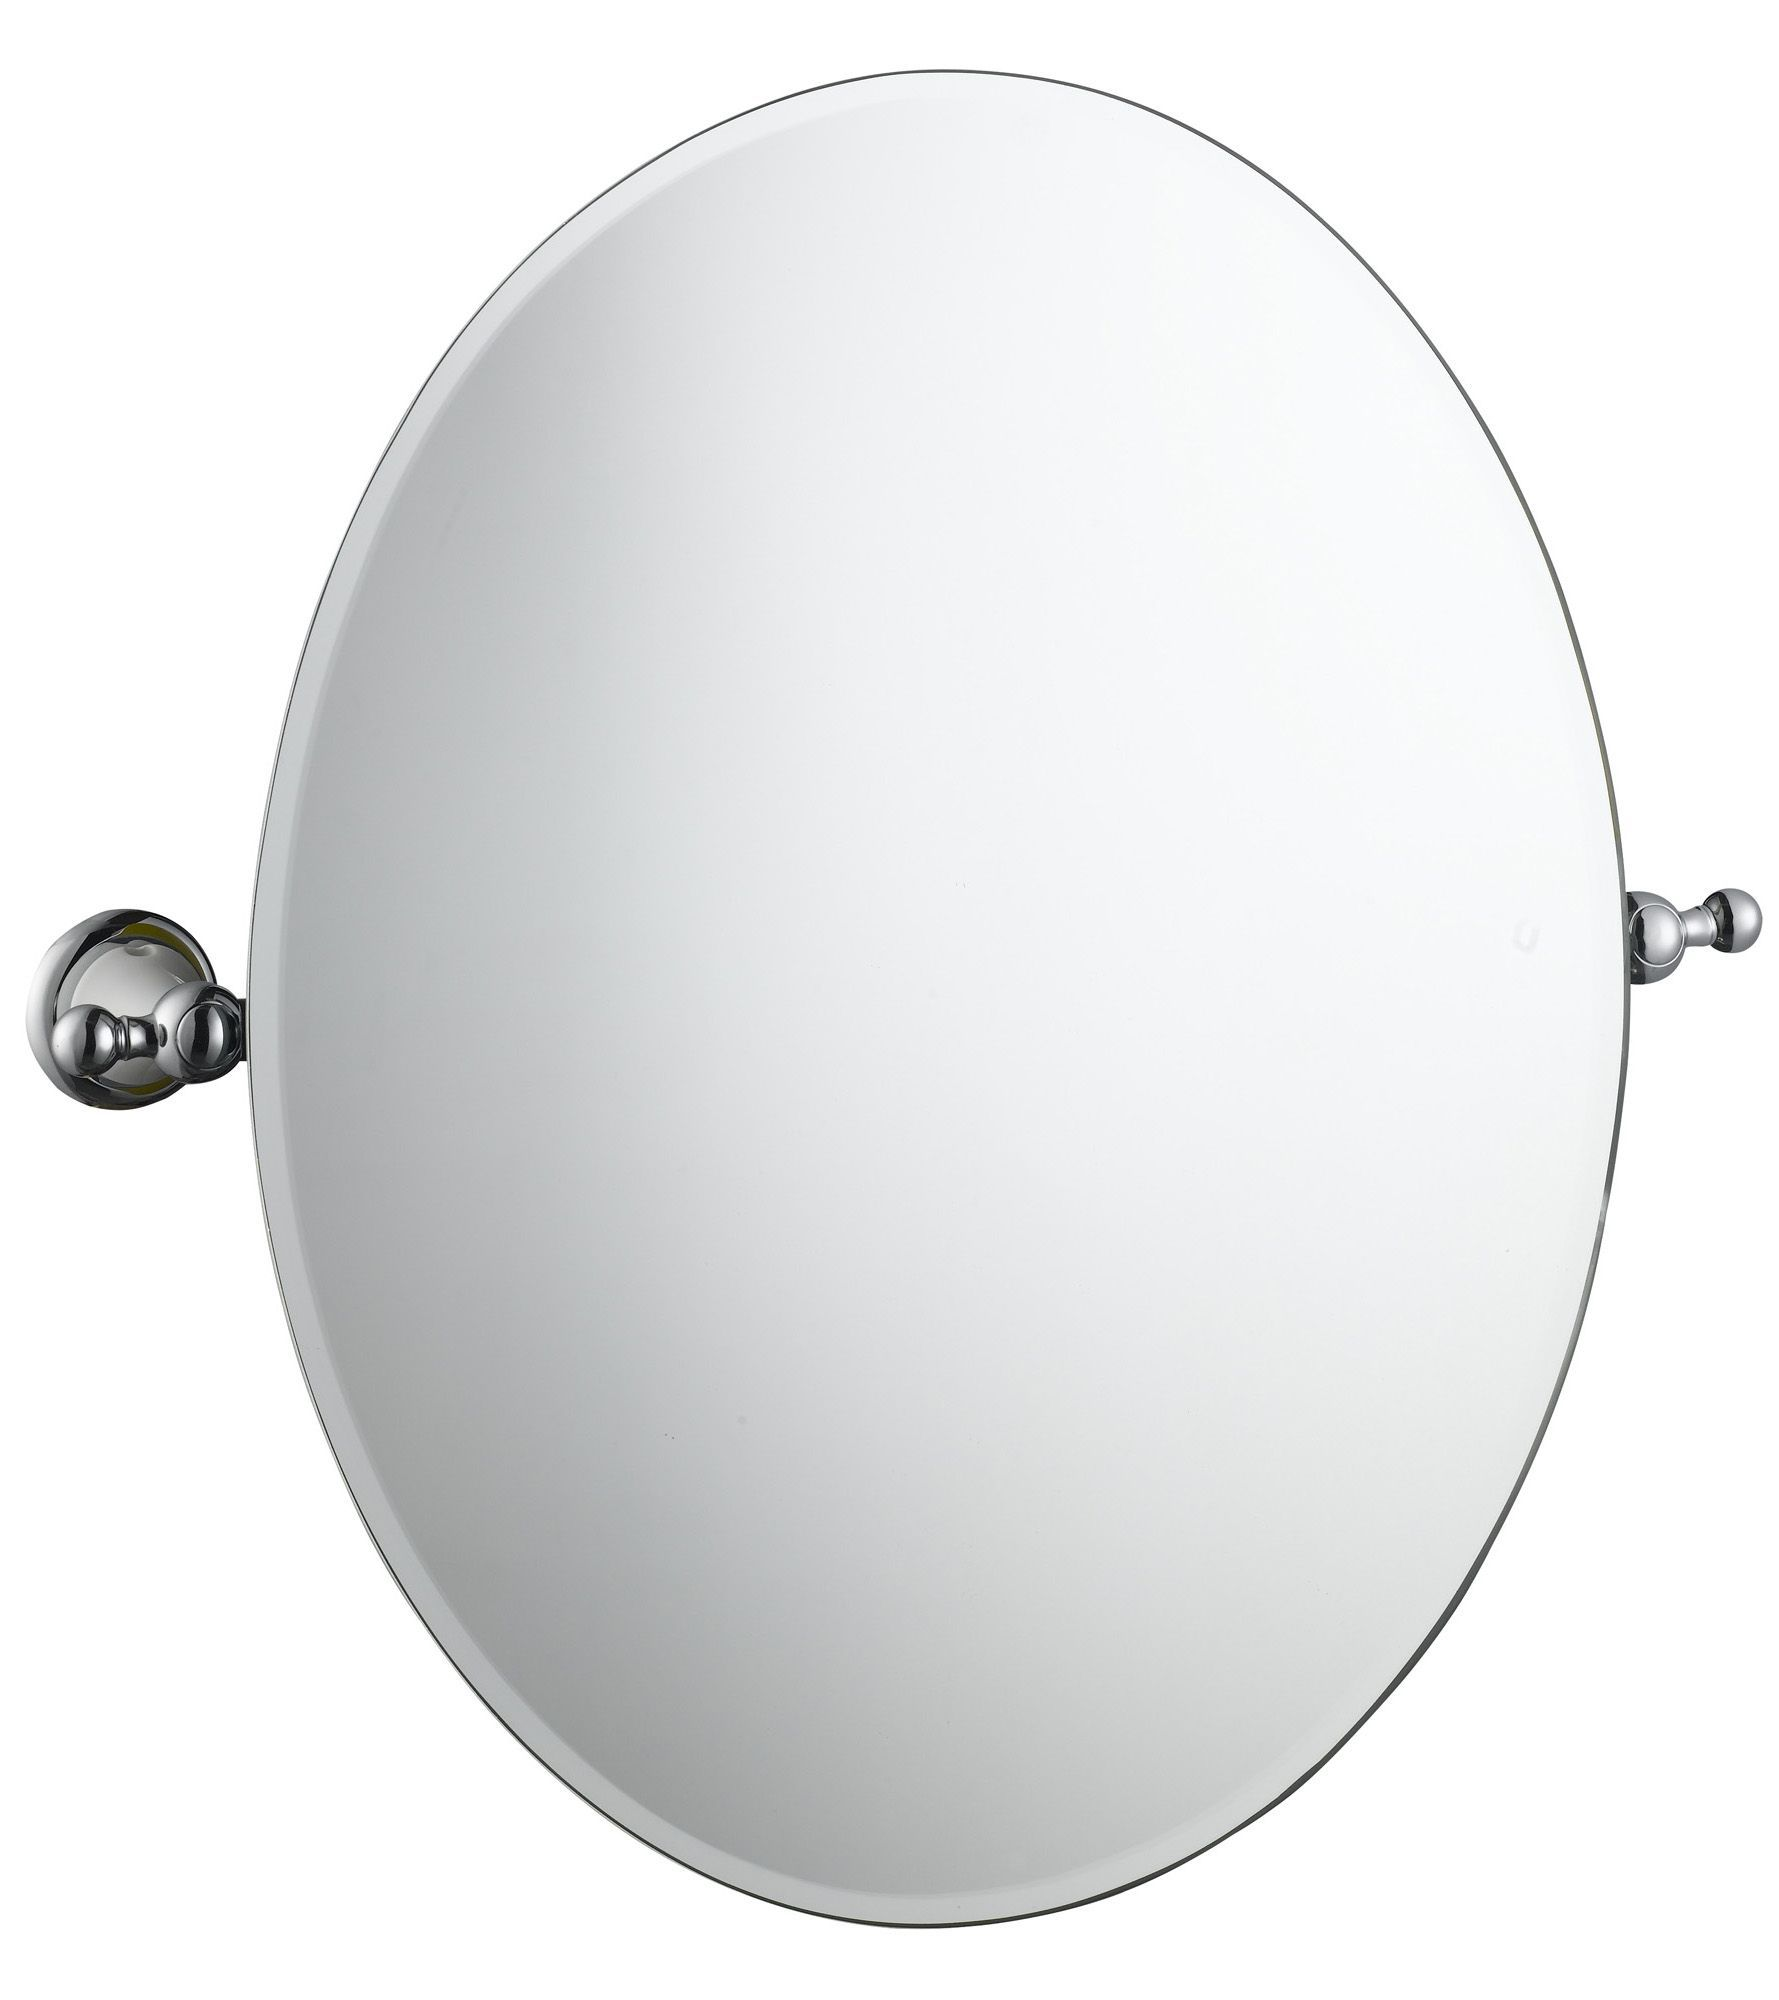 Cooke and lewis bathroom mirrors - Cooke Lewis Timeless Oval Wall Mirror W 501mm H 500mm Departments Diy At B Q